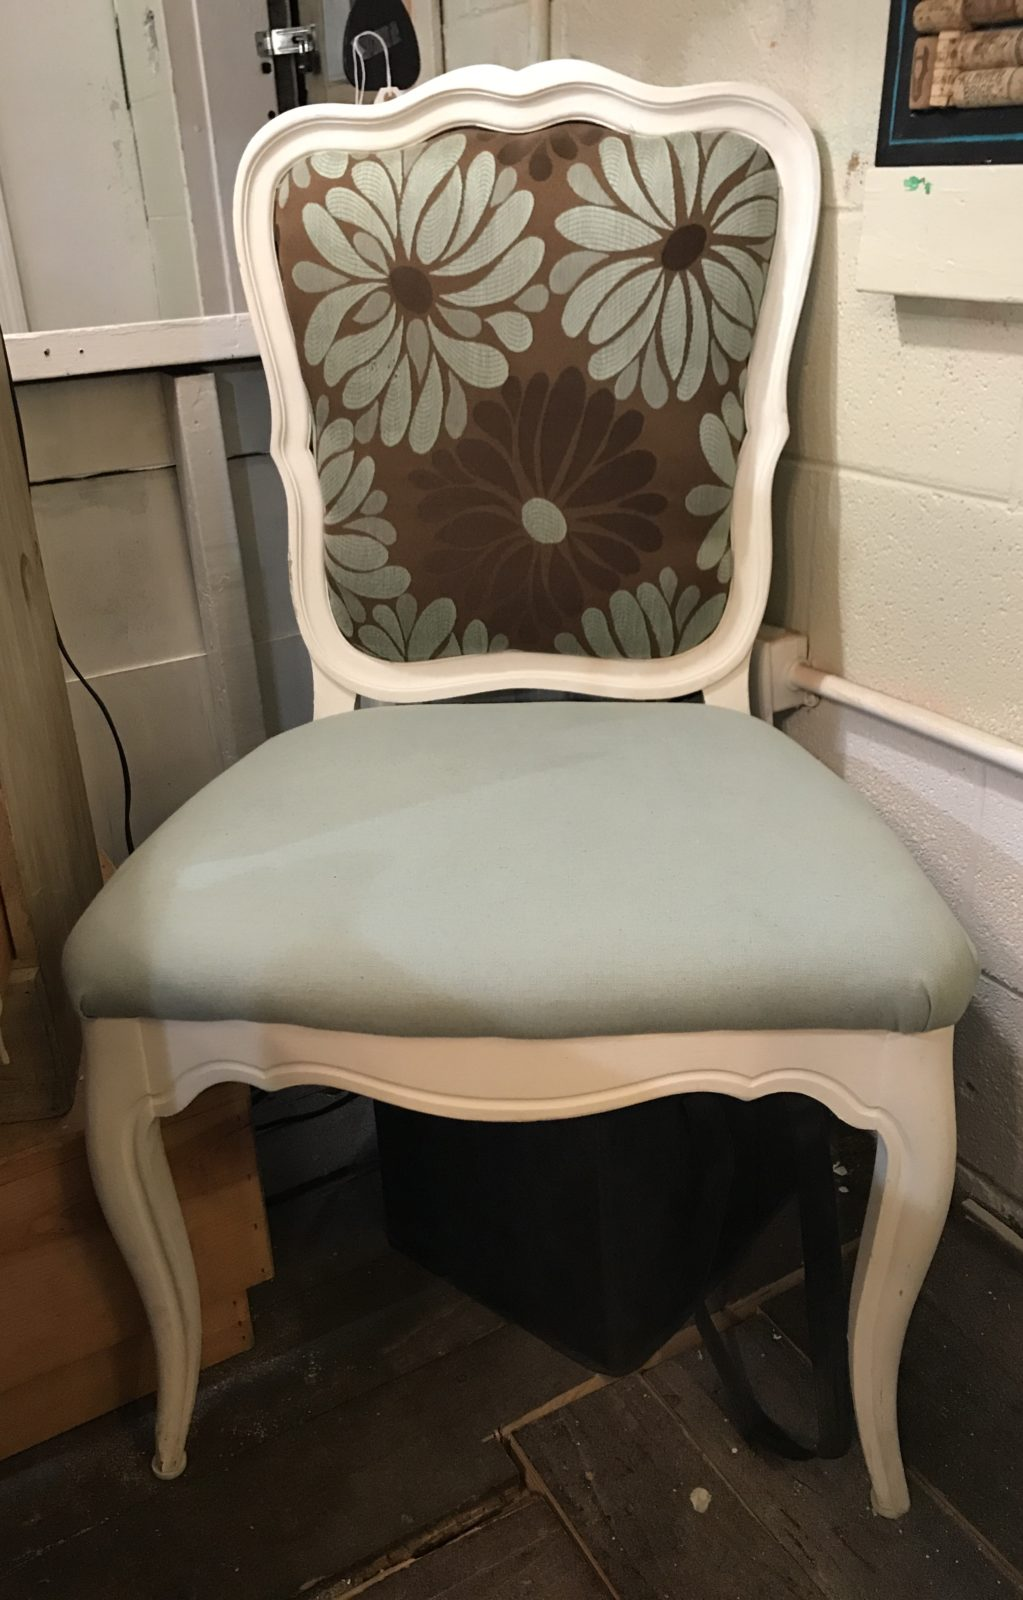 ReDesigned side chair • We took that chair from drab to fab with a fresh coat of paint and new upholstery! Great for the office, extra seating, bedroom...your choice!